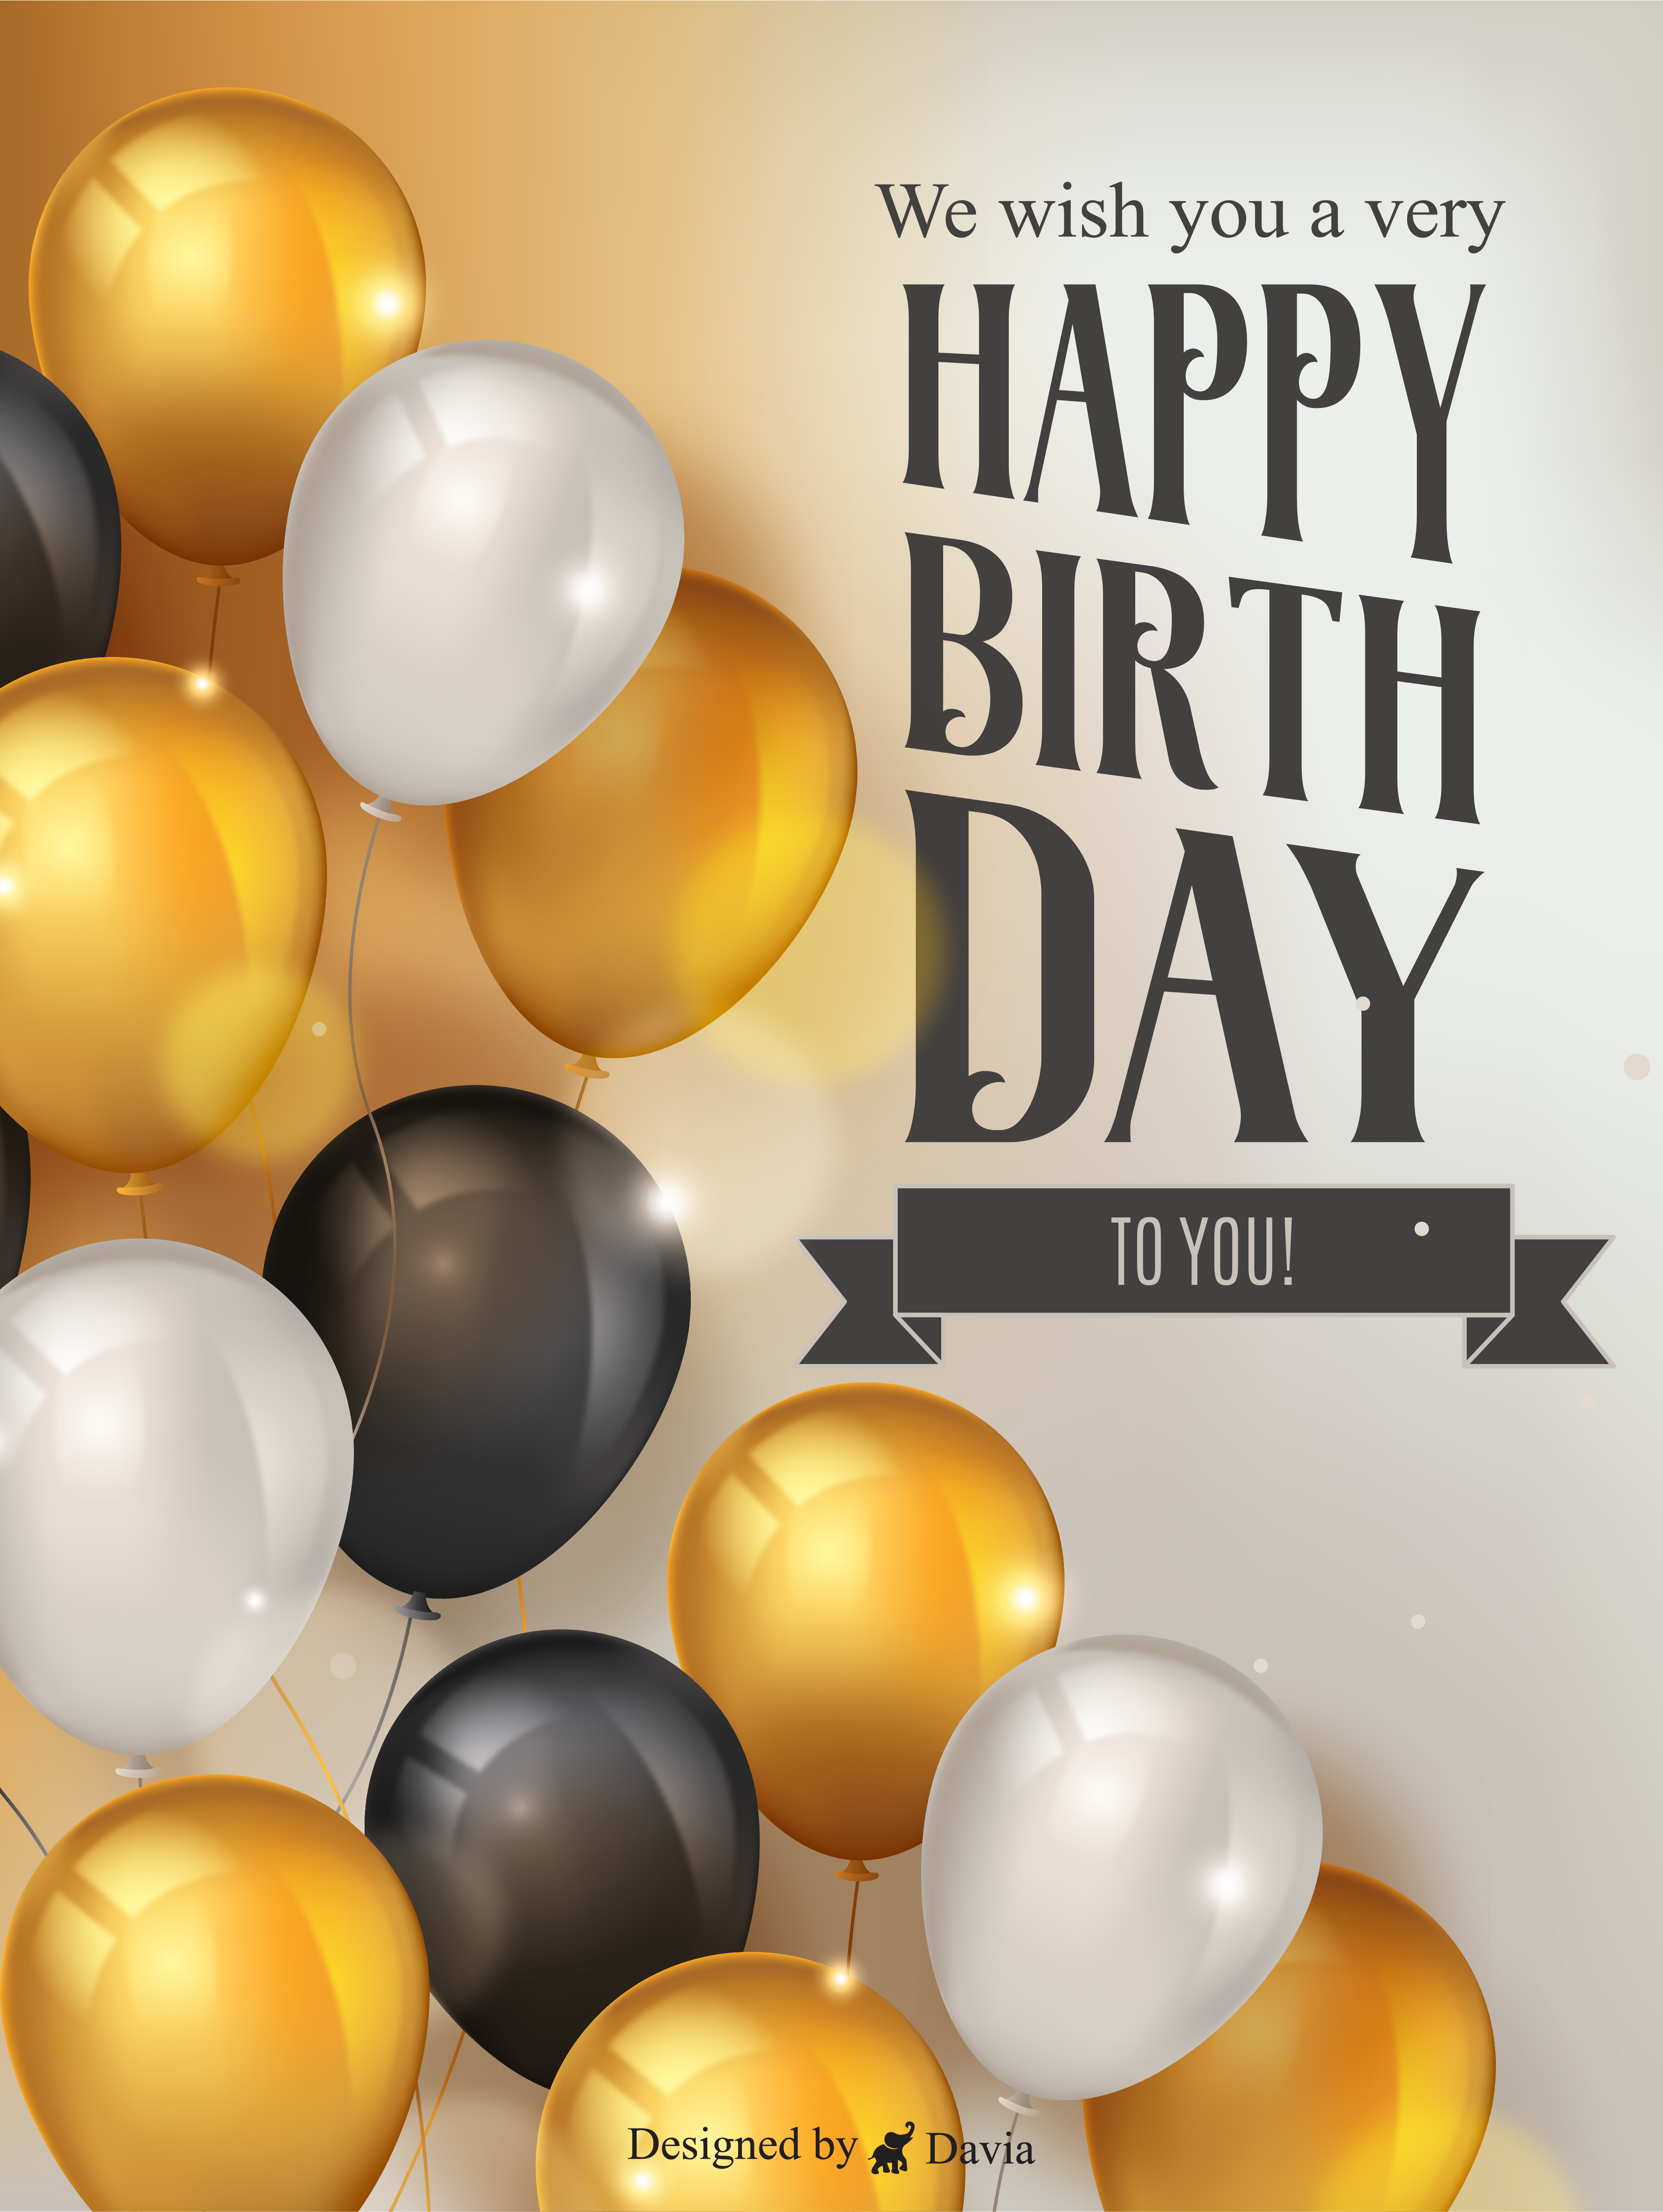 Freely Balloons Happy Birthday To Him Cards Birthday Greeting Cards By Davia In 2021 Happy Birthday To Him 60th Birthday Cards Birthday Greeting Cards